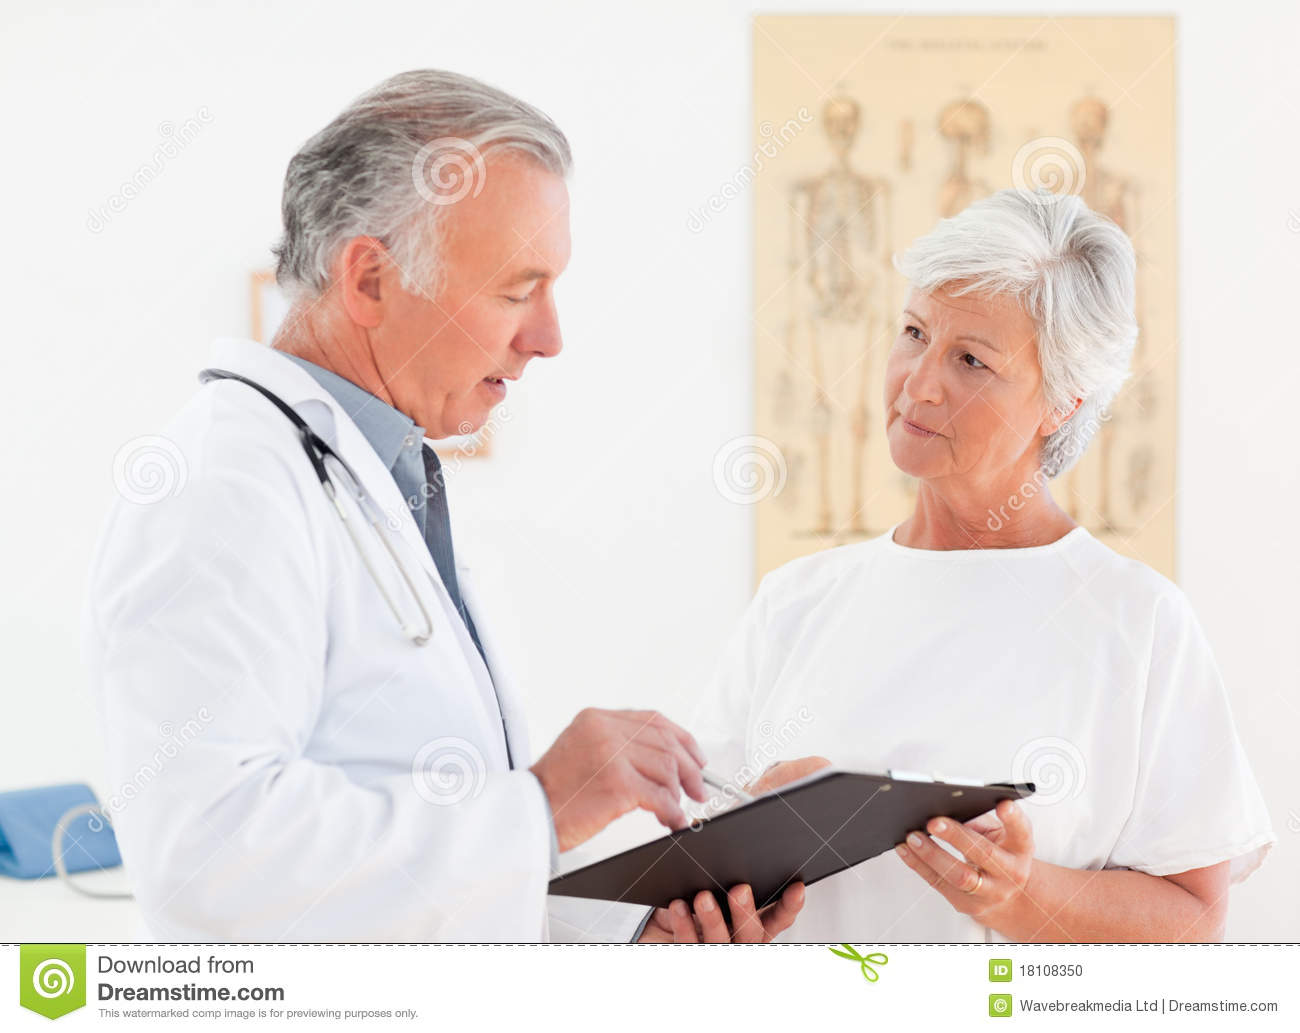 Sick Patient Pic : ... Doctor Talking With His Sick Patient Stock Photo - Image: 18108350